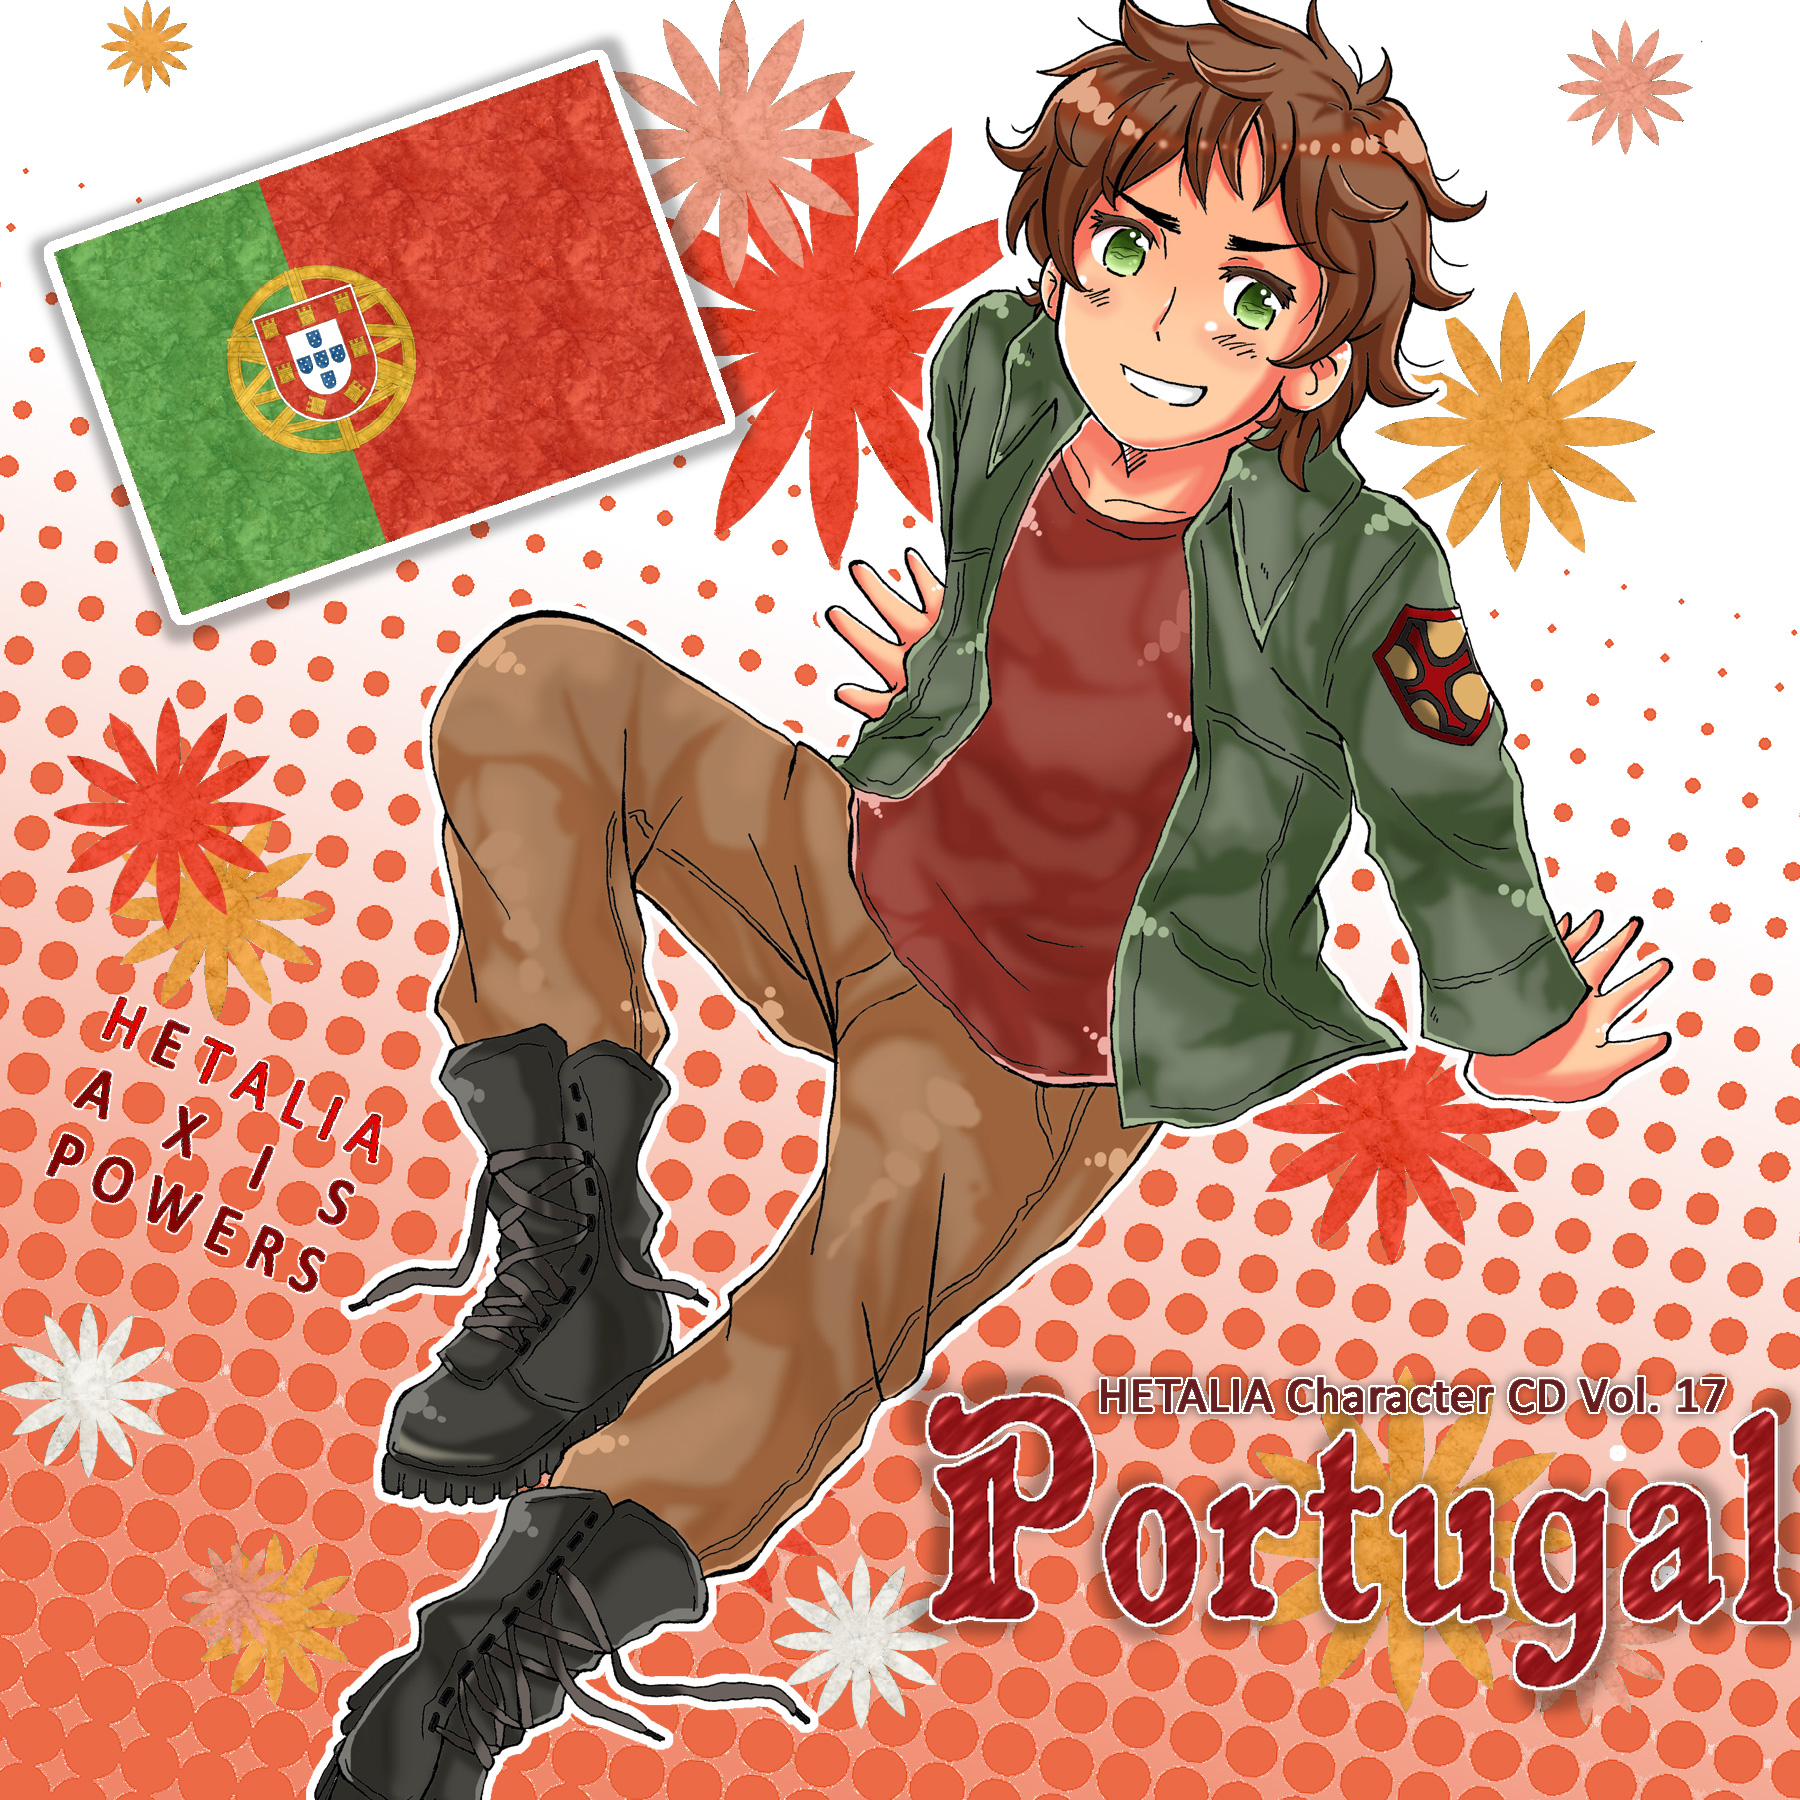 Portugal Hetalia Fan Characters Wiki Fandom Powered By